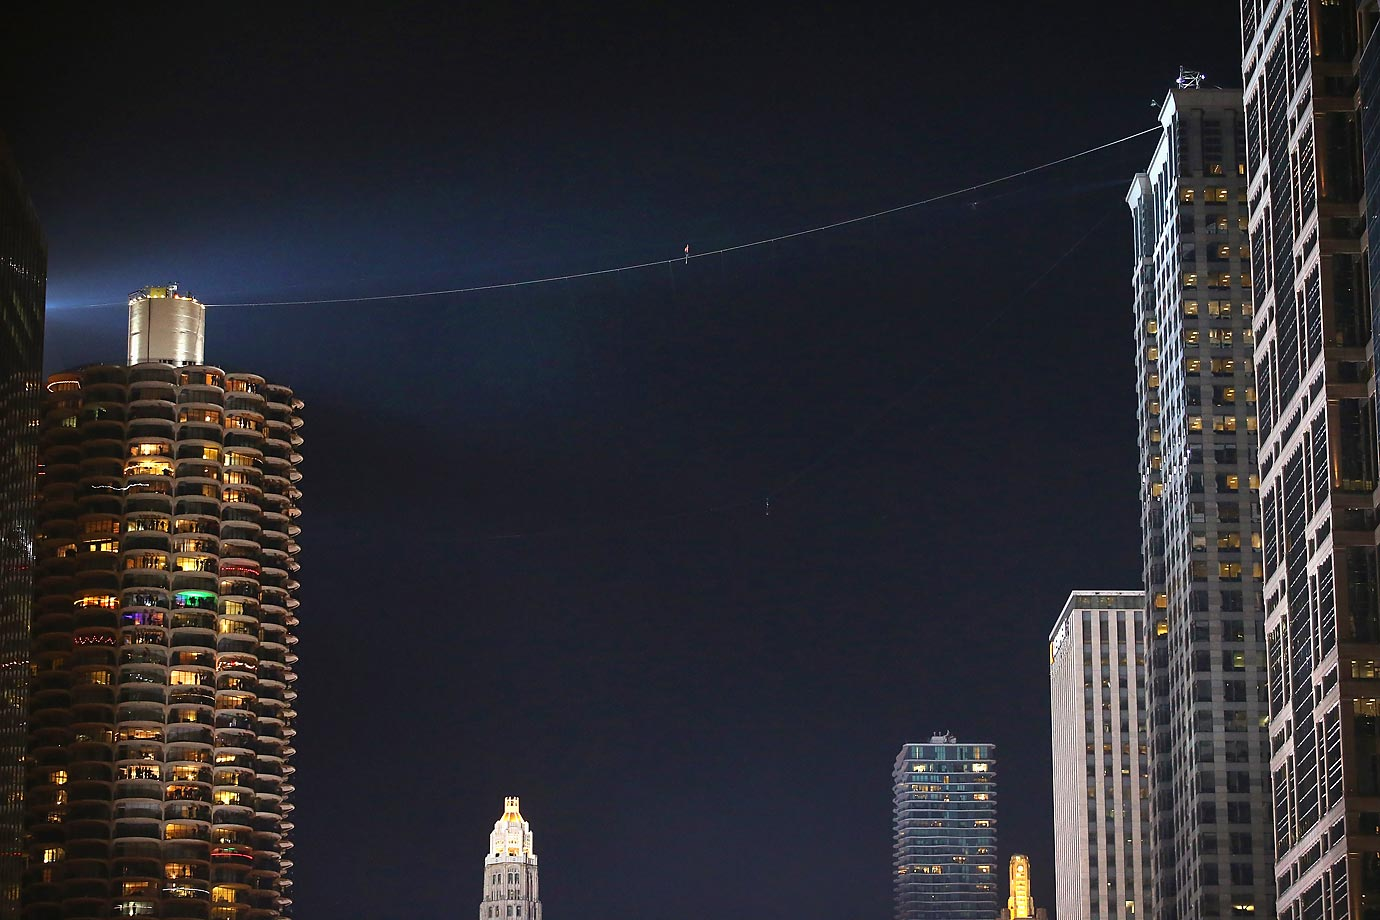 Tightrope walker Nik Wallenda (the tiny red dot you can see in the dark sky) walks from Marina City's west tower to the top of the 671-foot-tall Leo Burnett building in Chicago on November 2, 2014. The walk, which spanned 454 feet, is the highest and steepest skyscraper walk in the history of the Flying Wallenda family.